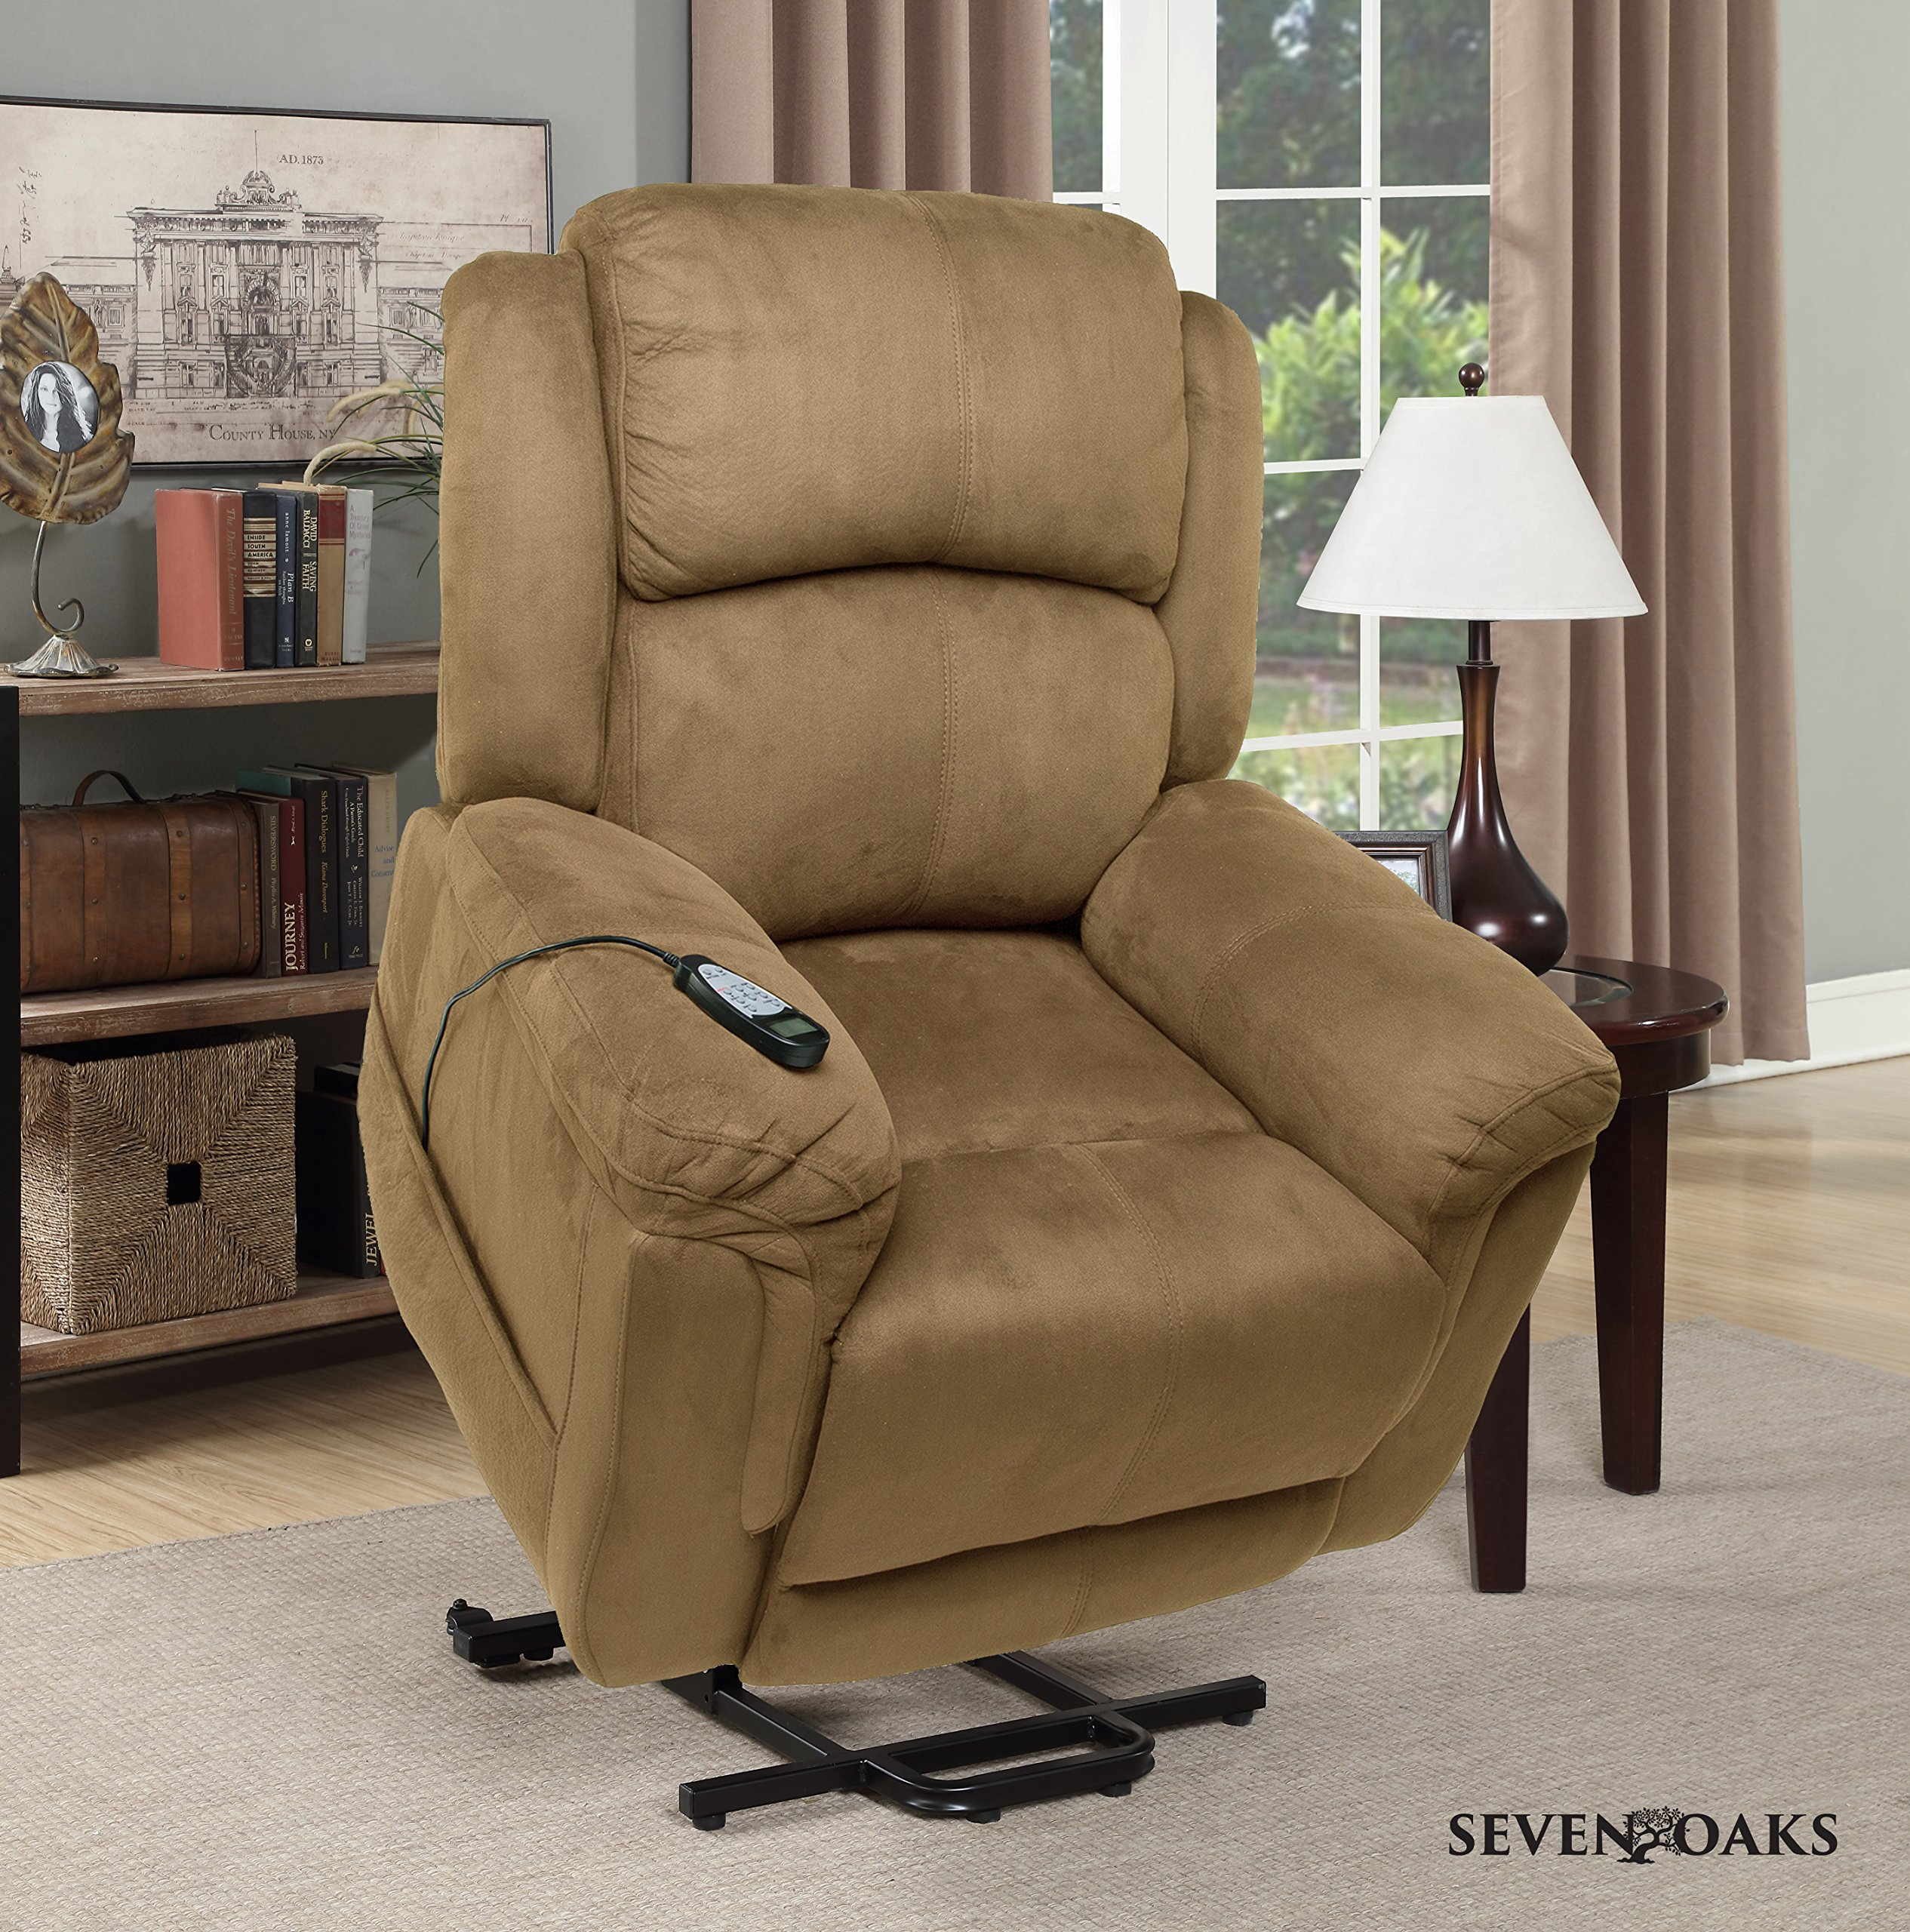 Seven Oaks Power Lift Recliner for Seniors | Electric Chair for the Elderly with Heated Massage | Adjustable Controls & Full Range of Motion | Soft Microfiber | (Model # TANMICROMOD)